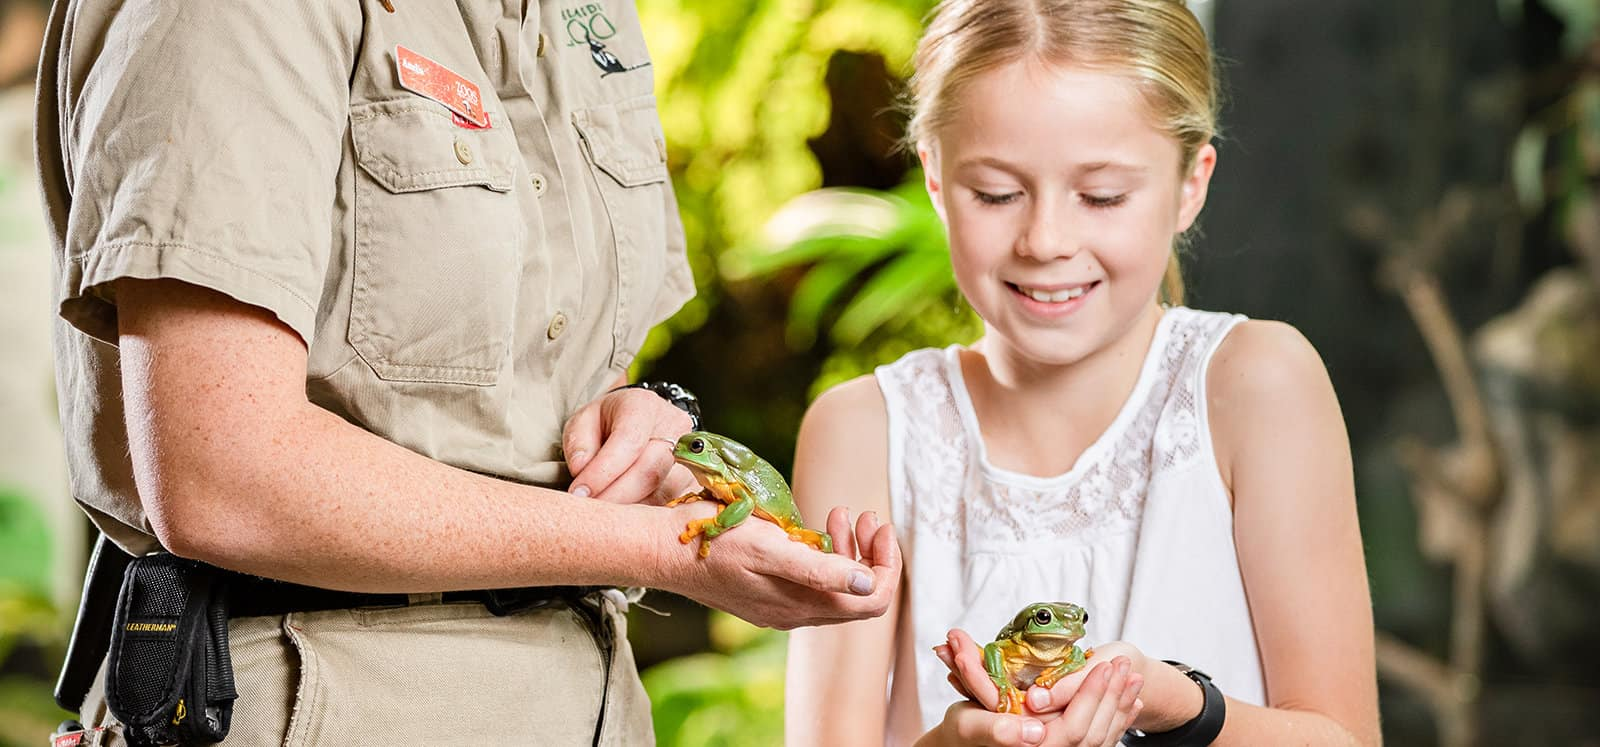 Smiling girl holding frog with Adelaide Zoo keeper